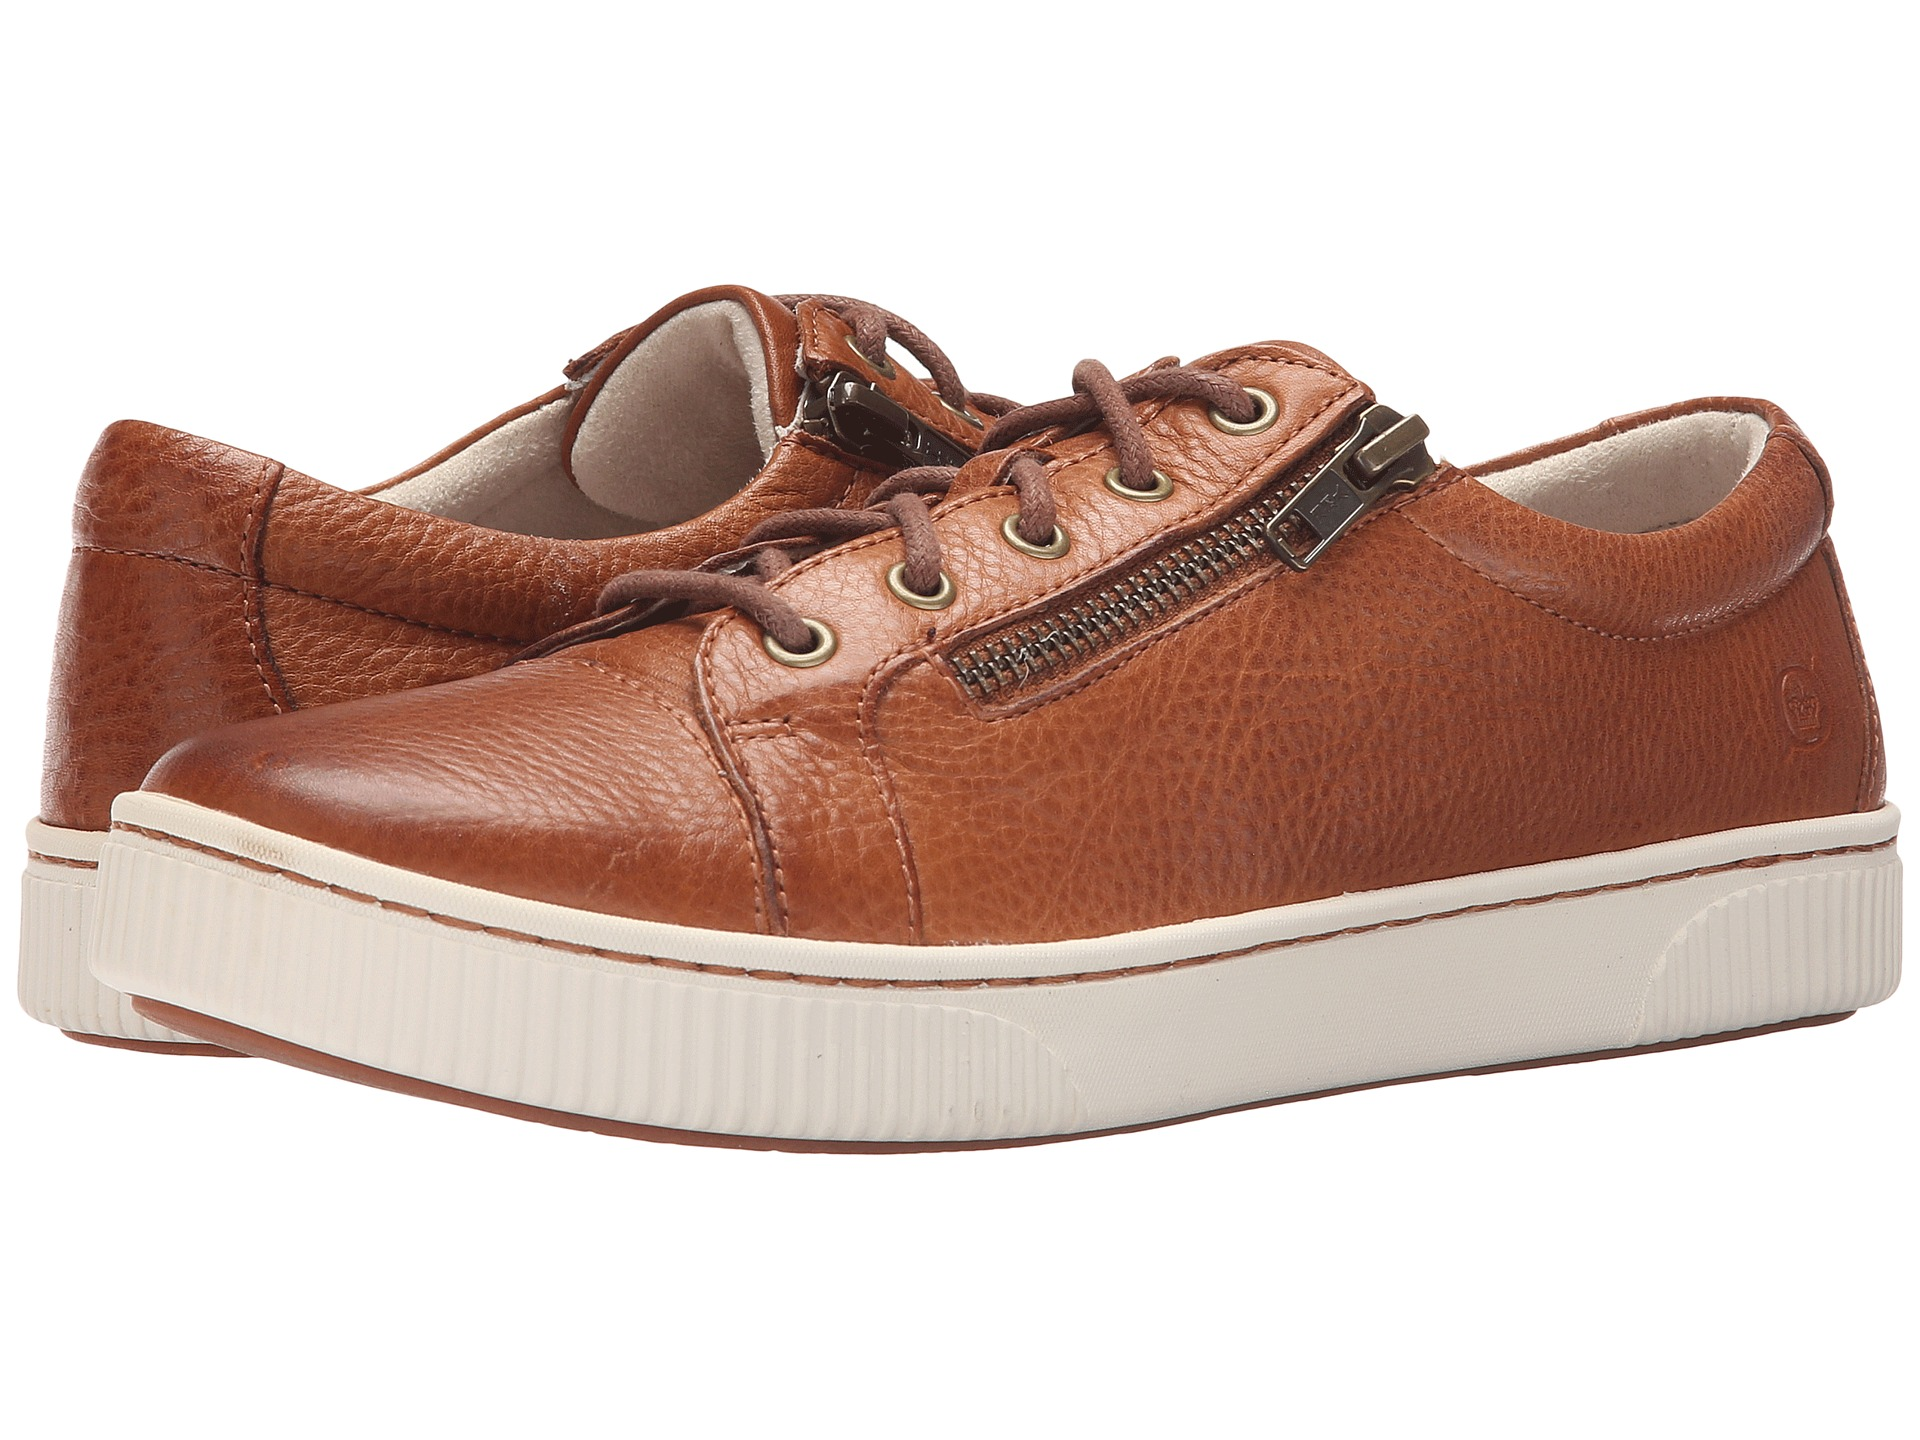 Skate shoes jakarta - View More Like This